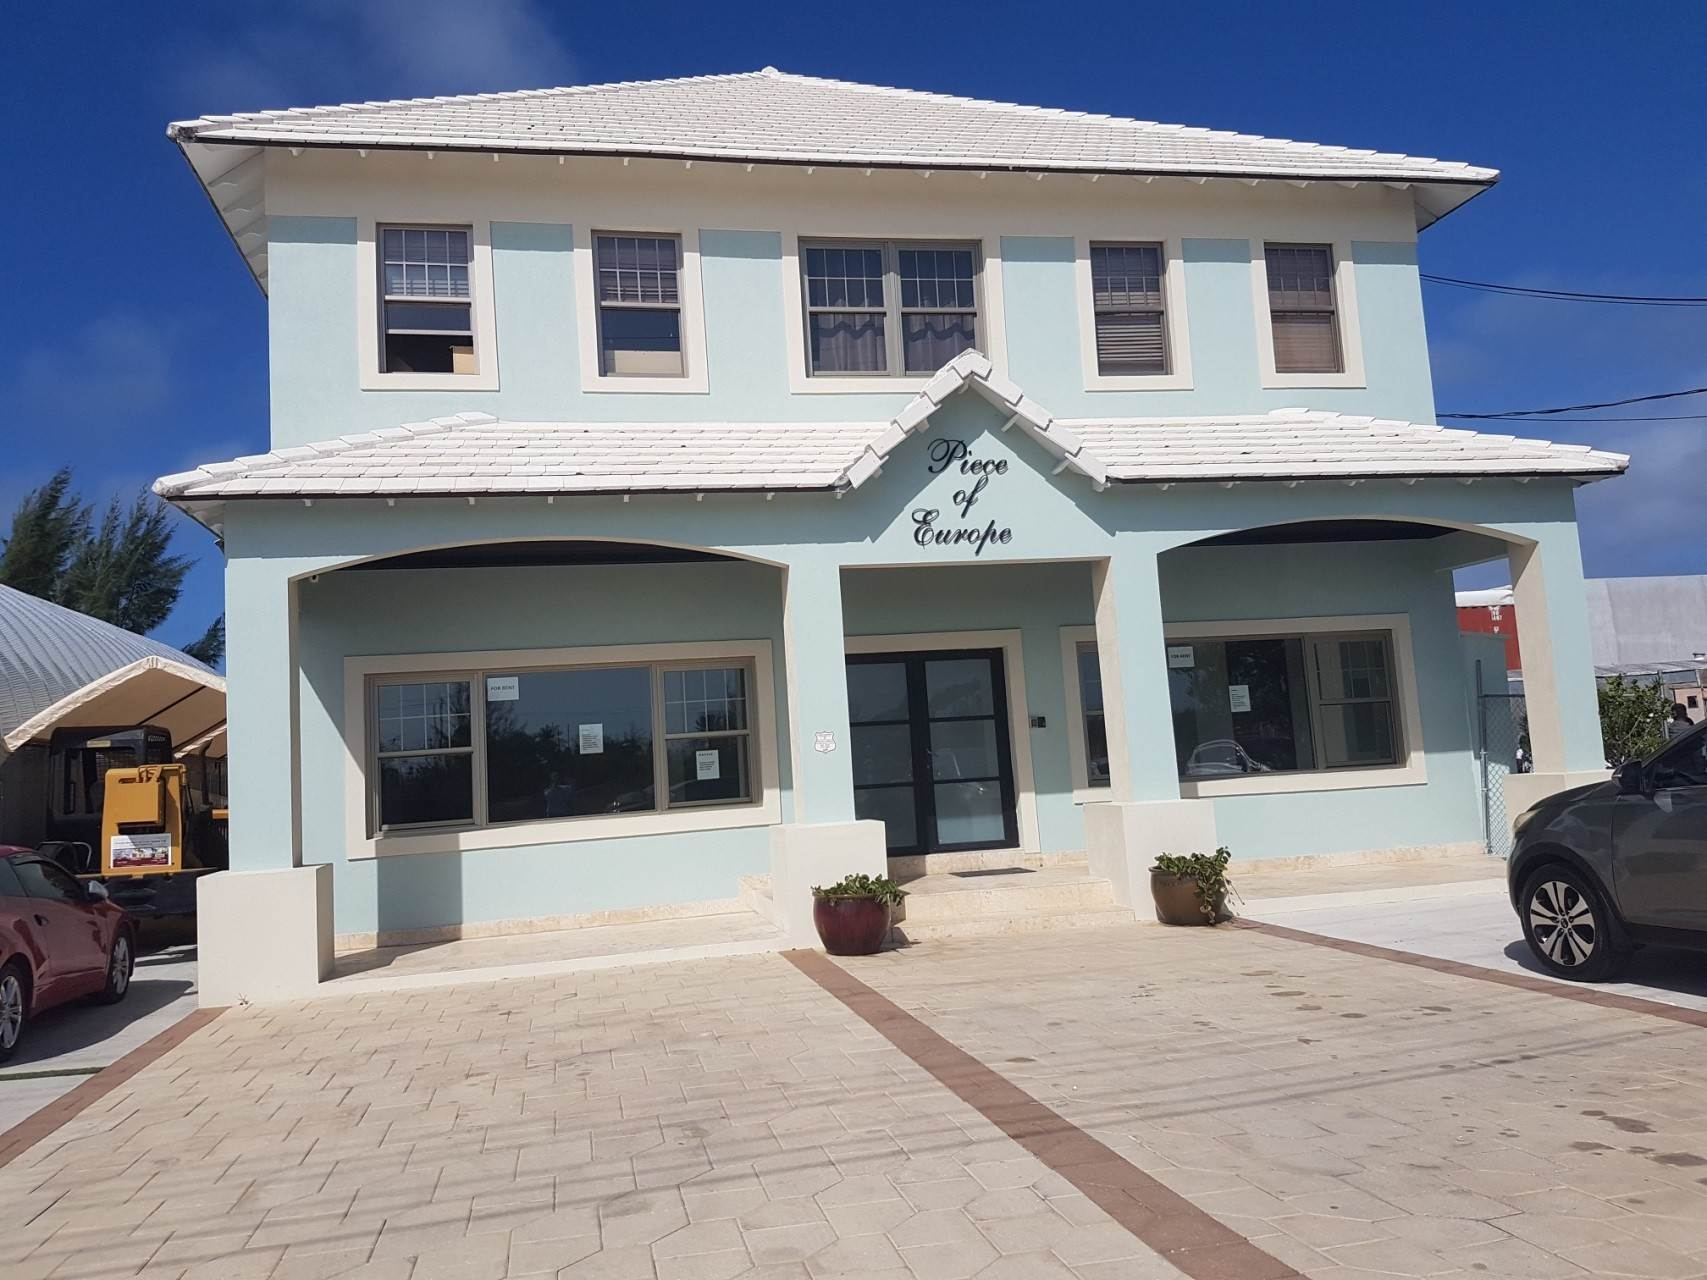 Commercial for Rent at Office/Retail Space at Airport Industrial Park - MLS 36622 Airport Industrial Park, Nassau And Paradise Island, Bahamas